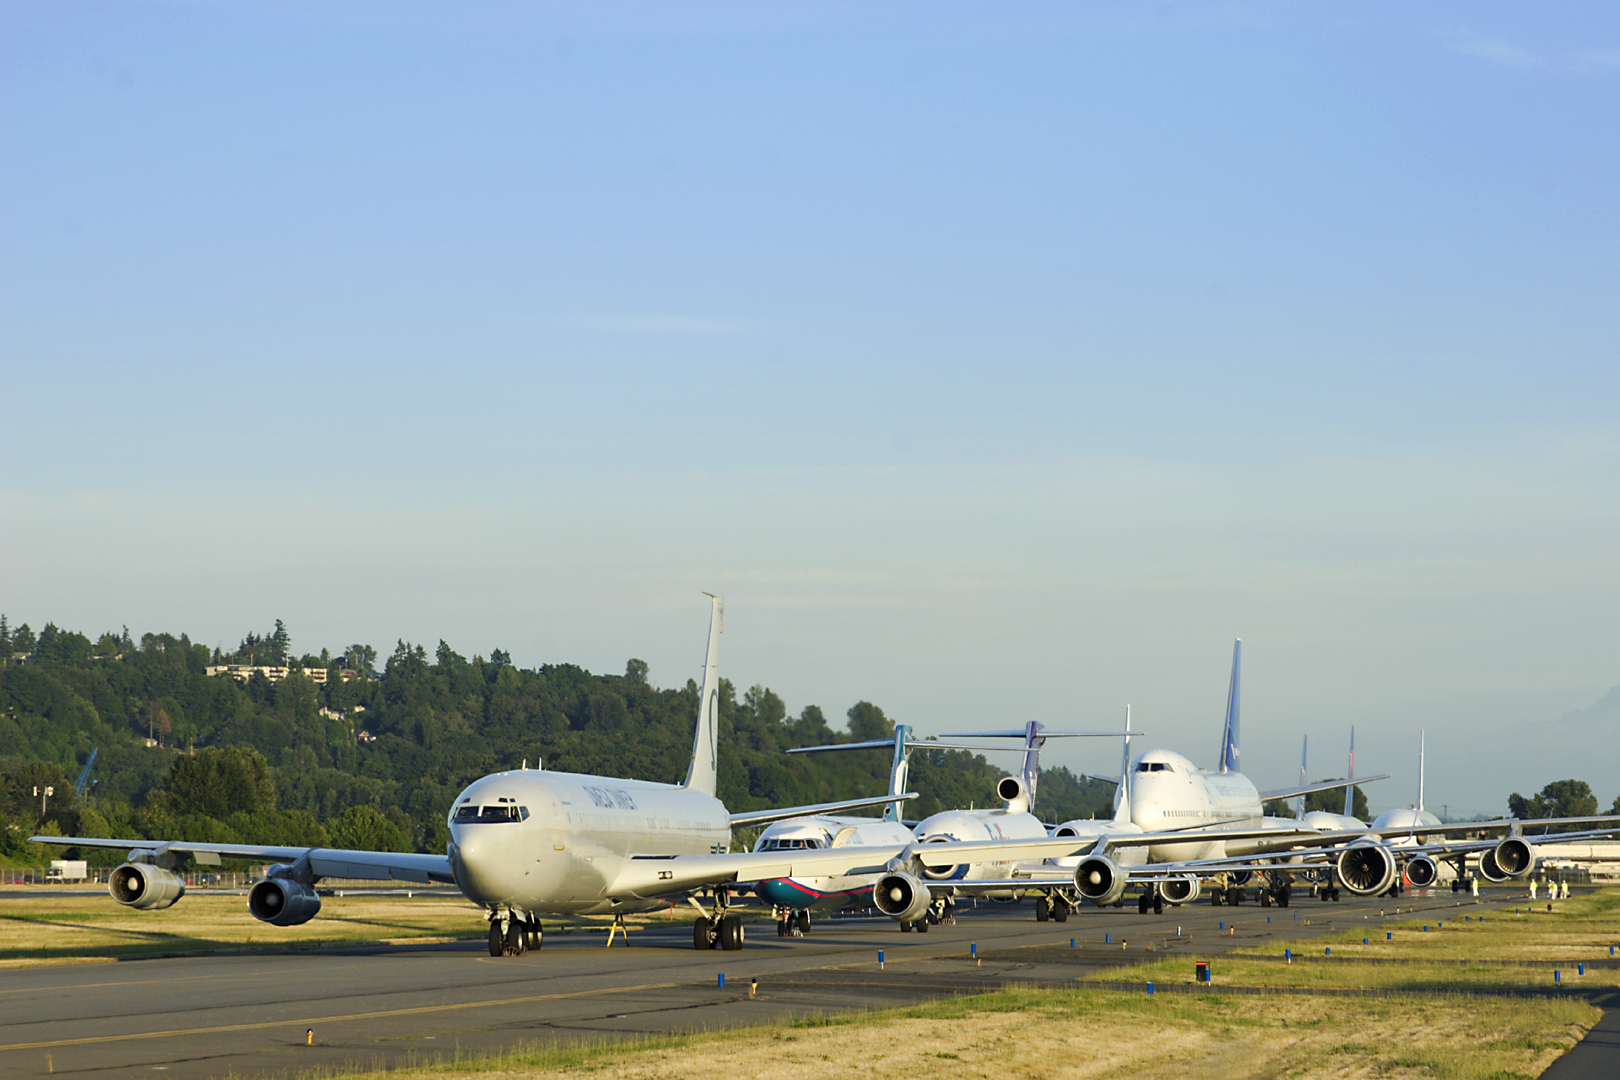 707, 717, 727, 737, 747, 757, 767, 777 all lined up for the first